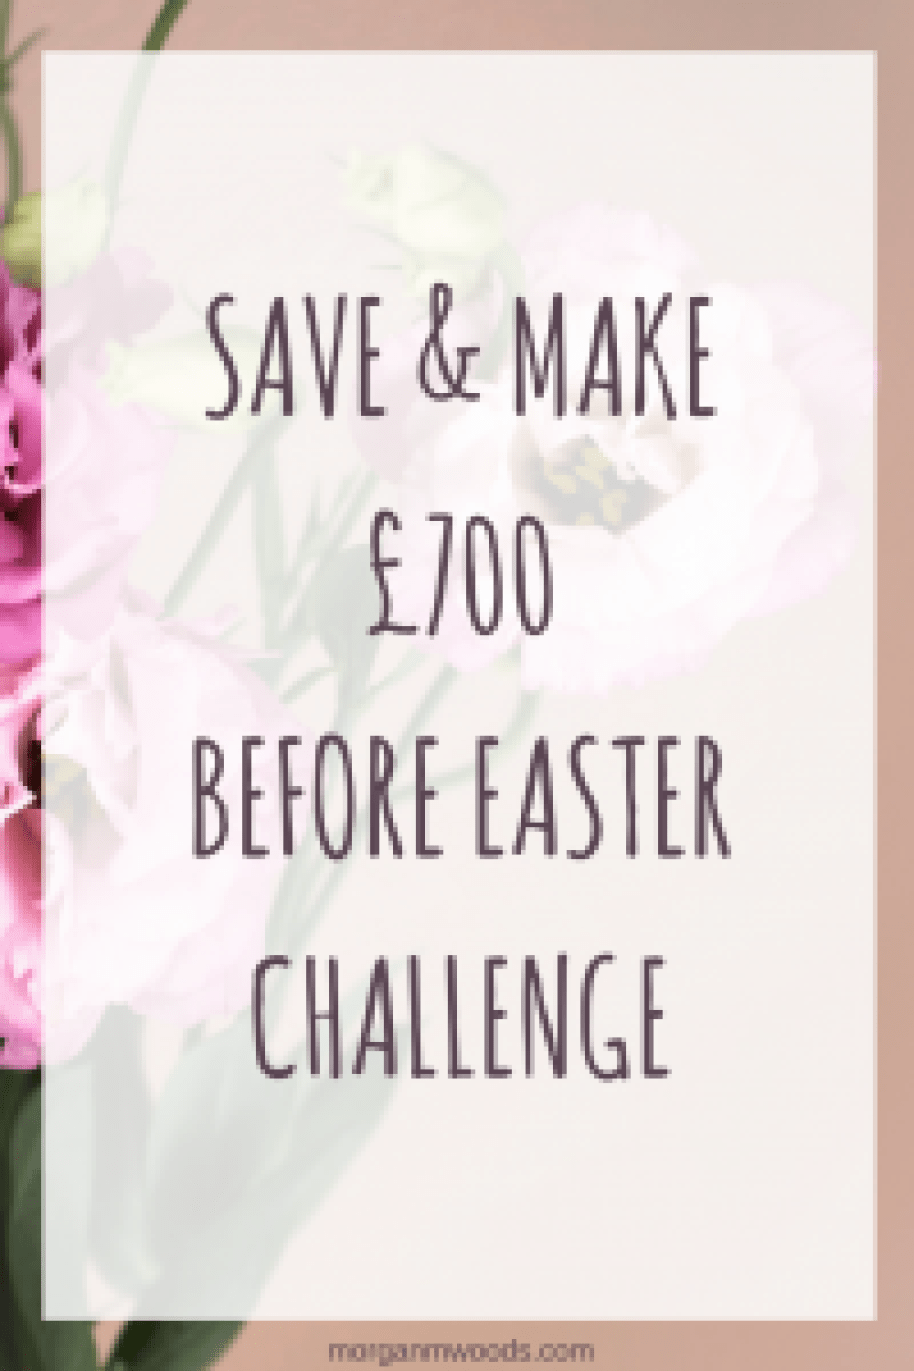 save & make £700 before easter challenge